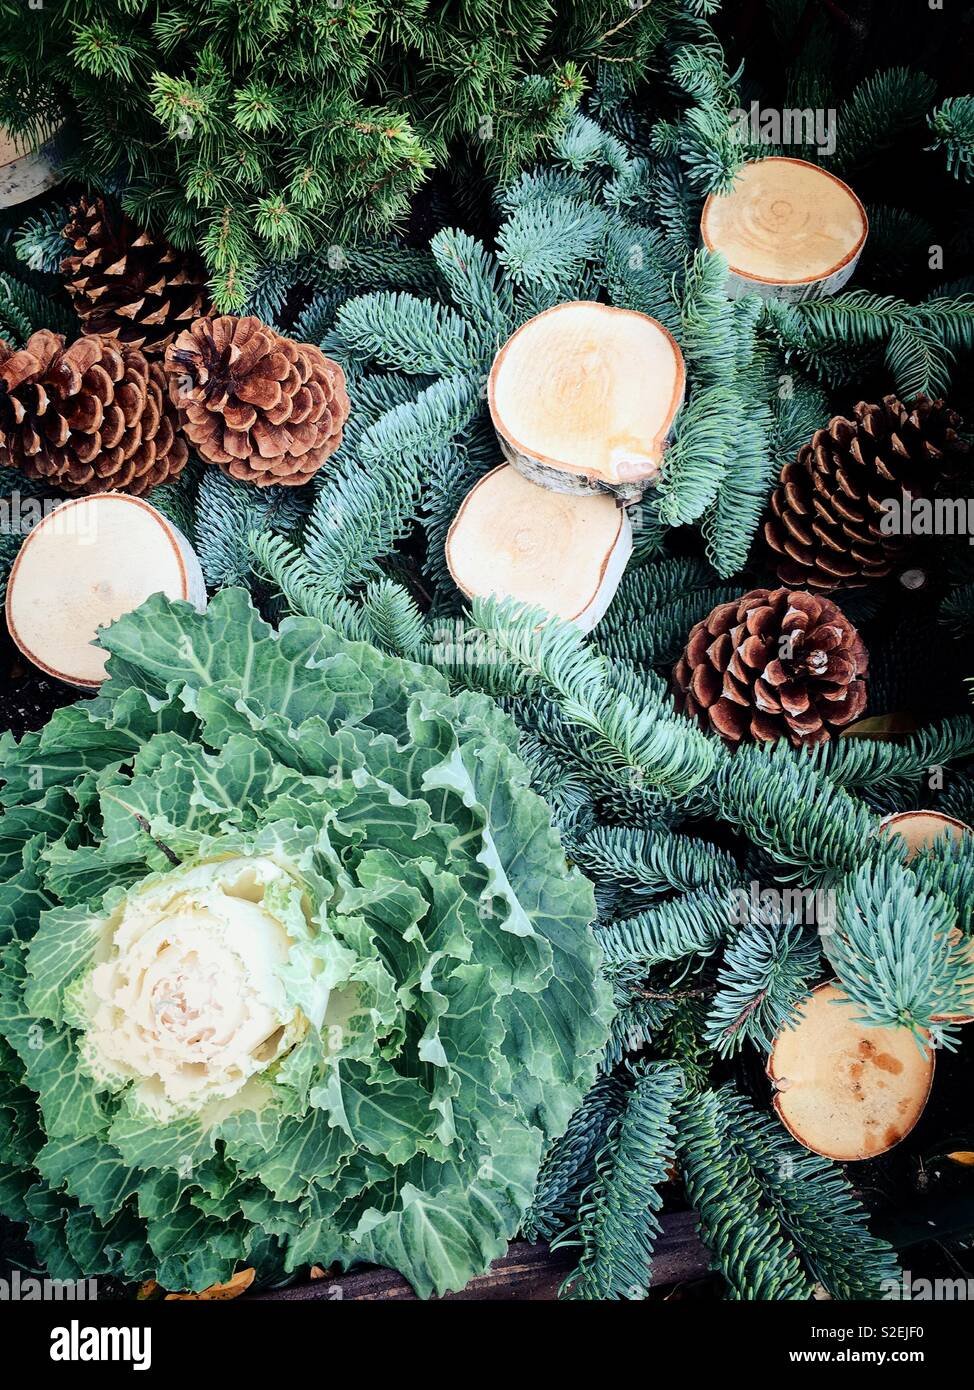 Holiday Display pinecones evergreens and wood circles, United States - Stock Image